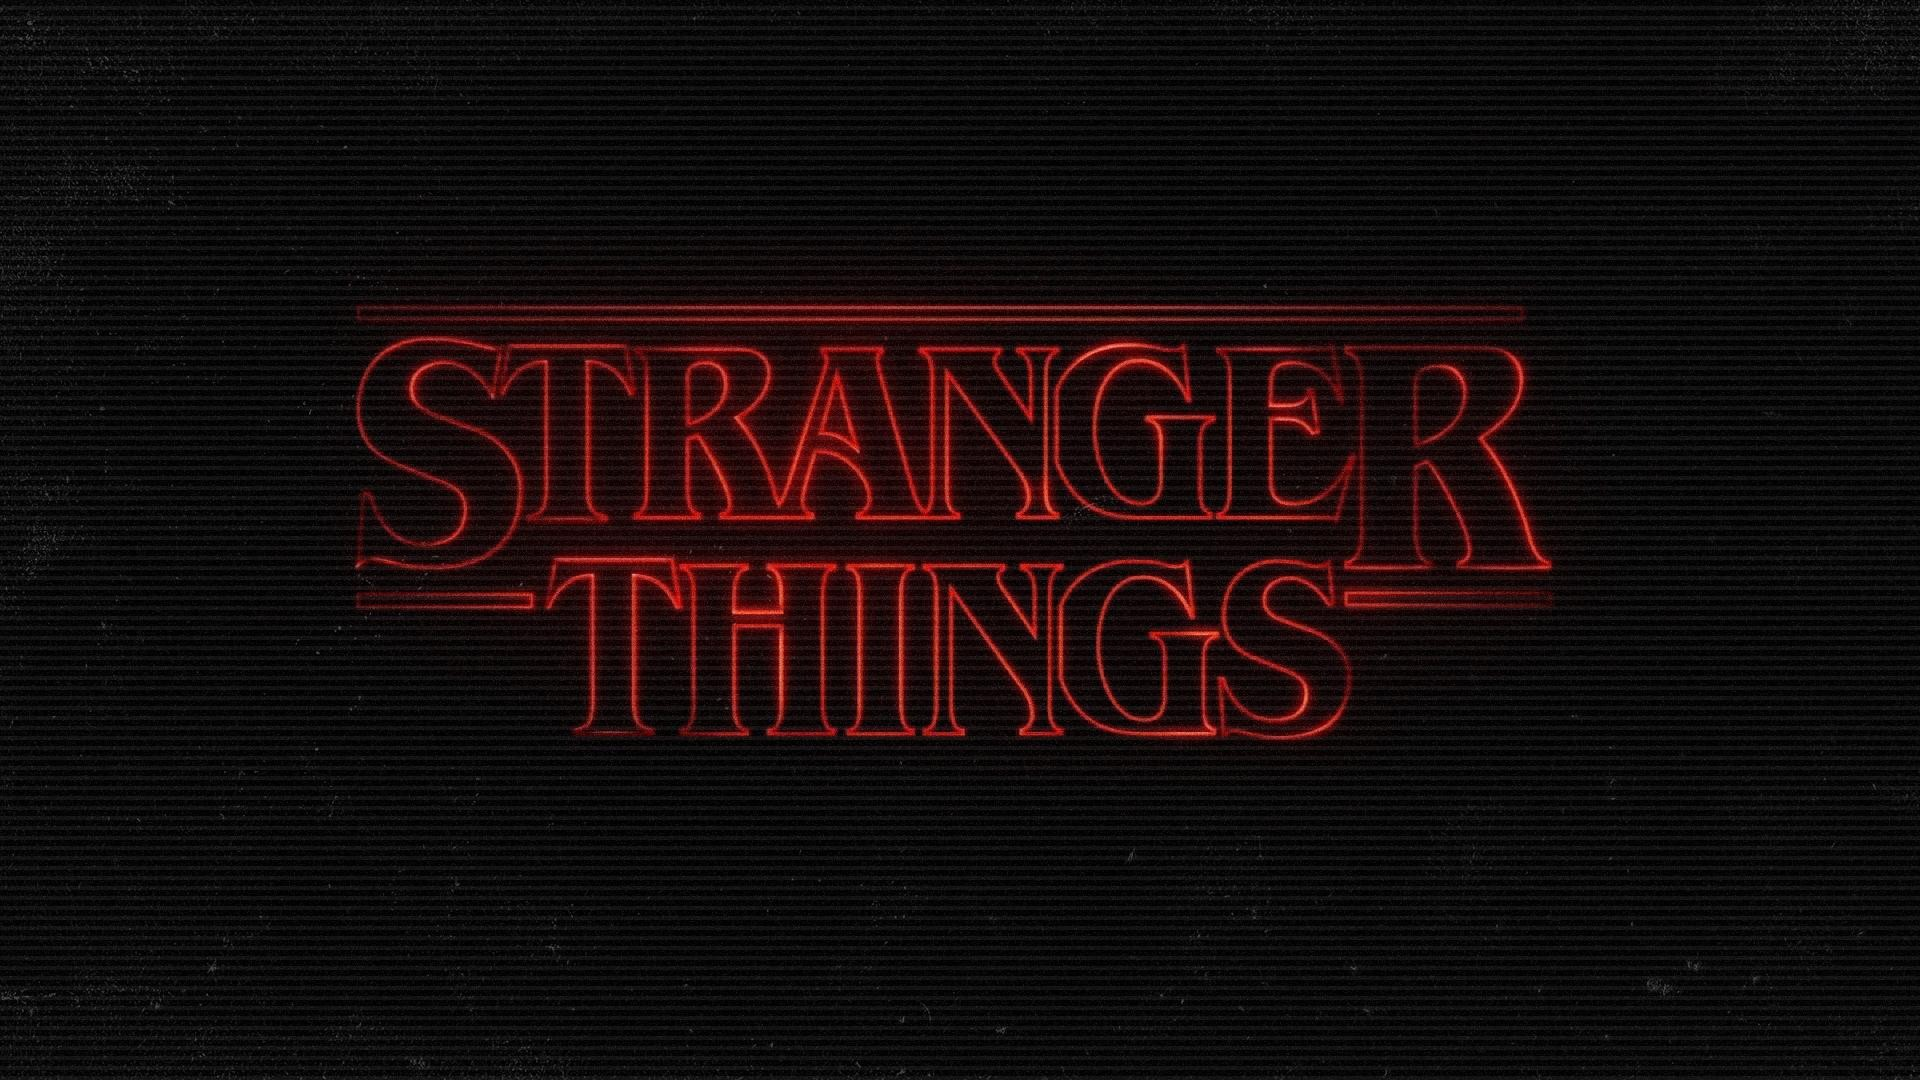 Stranger Things Wallpaper Download Free Beautiful Wallpapers For